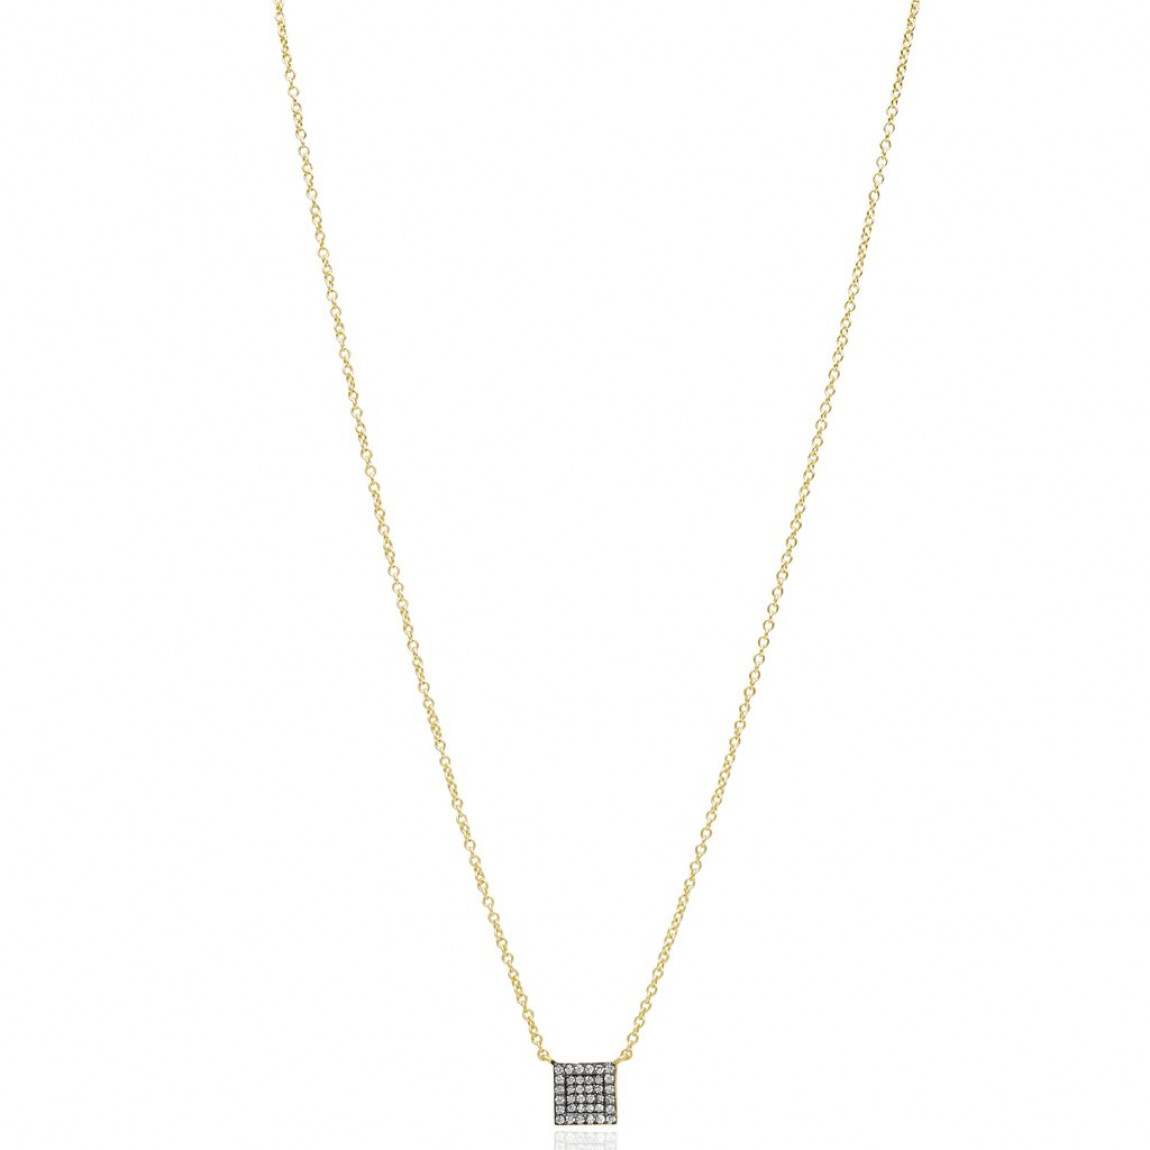 Freida Rothman Pavé Square Pendant Necklace, 14k Yellow Gold And Black Sterling Silver, Cz Within Most Popular Sparkling Stones Pendant Necklaces (View 9 of 25)